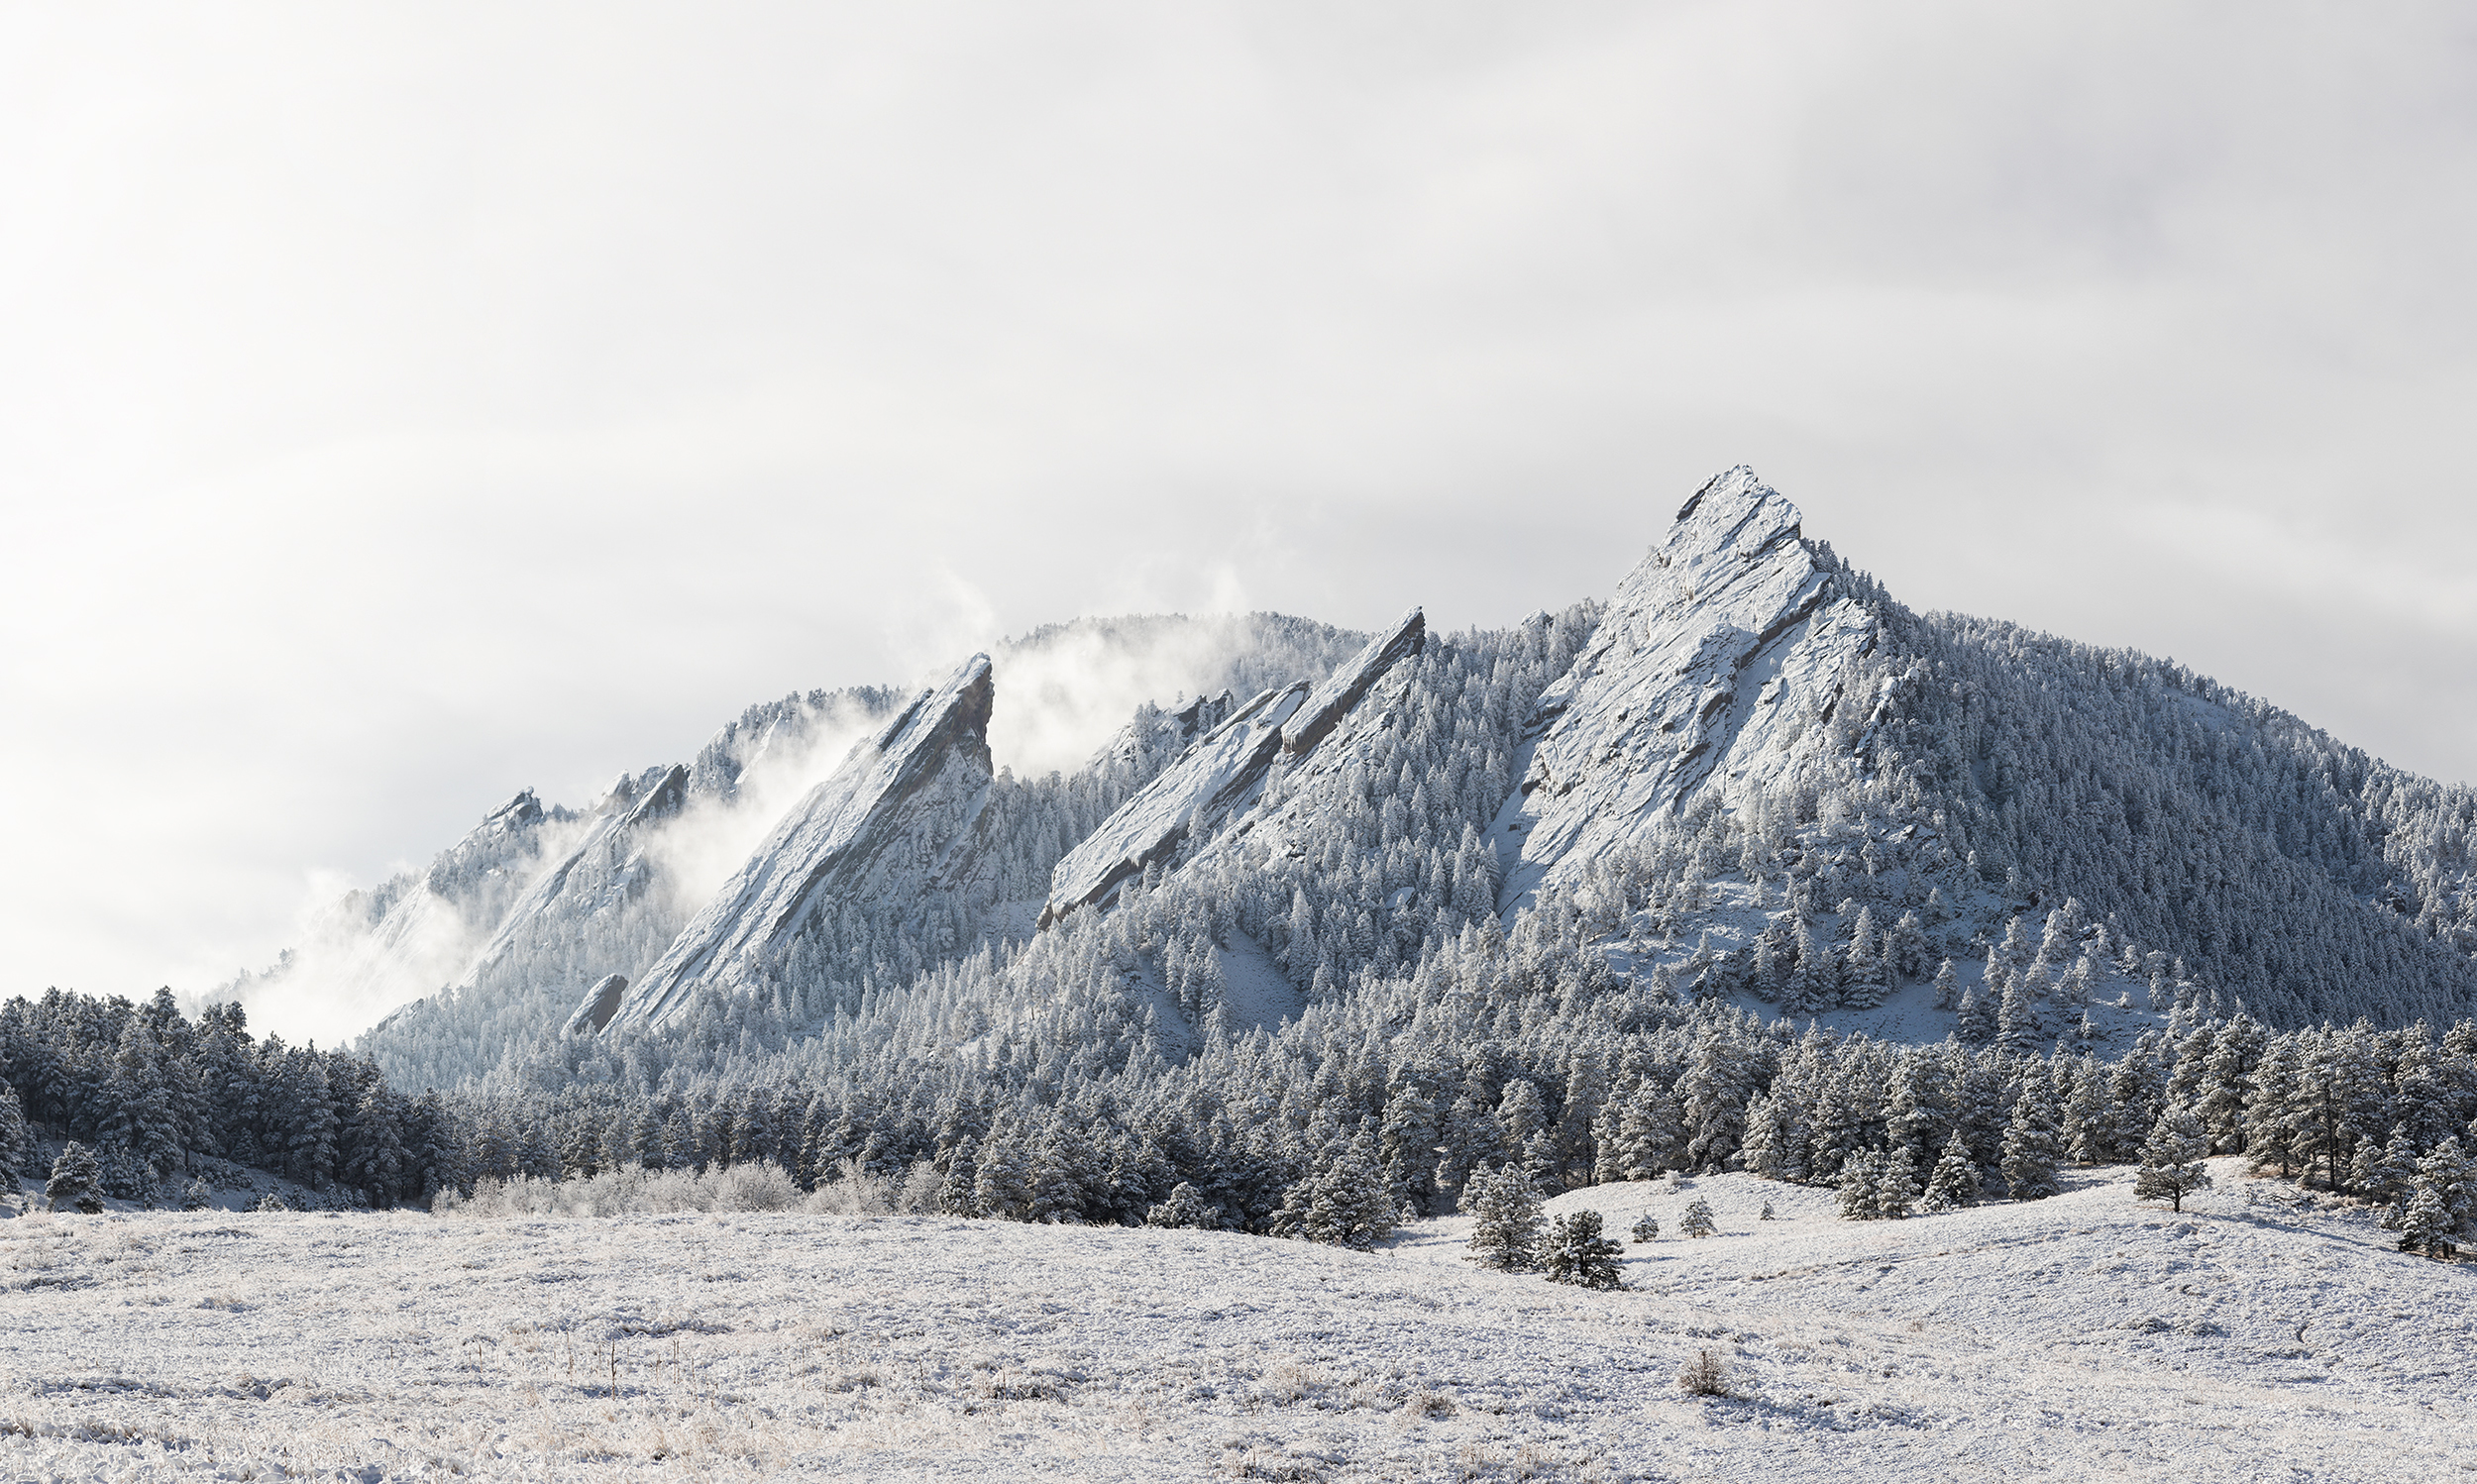 Flatirons Snow 2015-11-30 (4) small.jpg